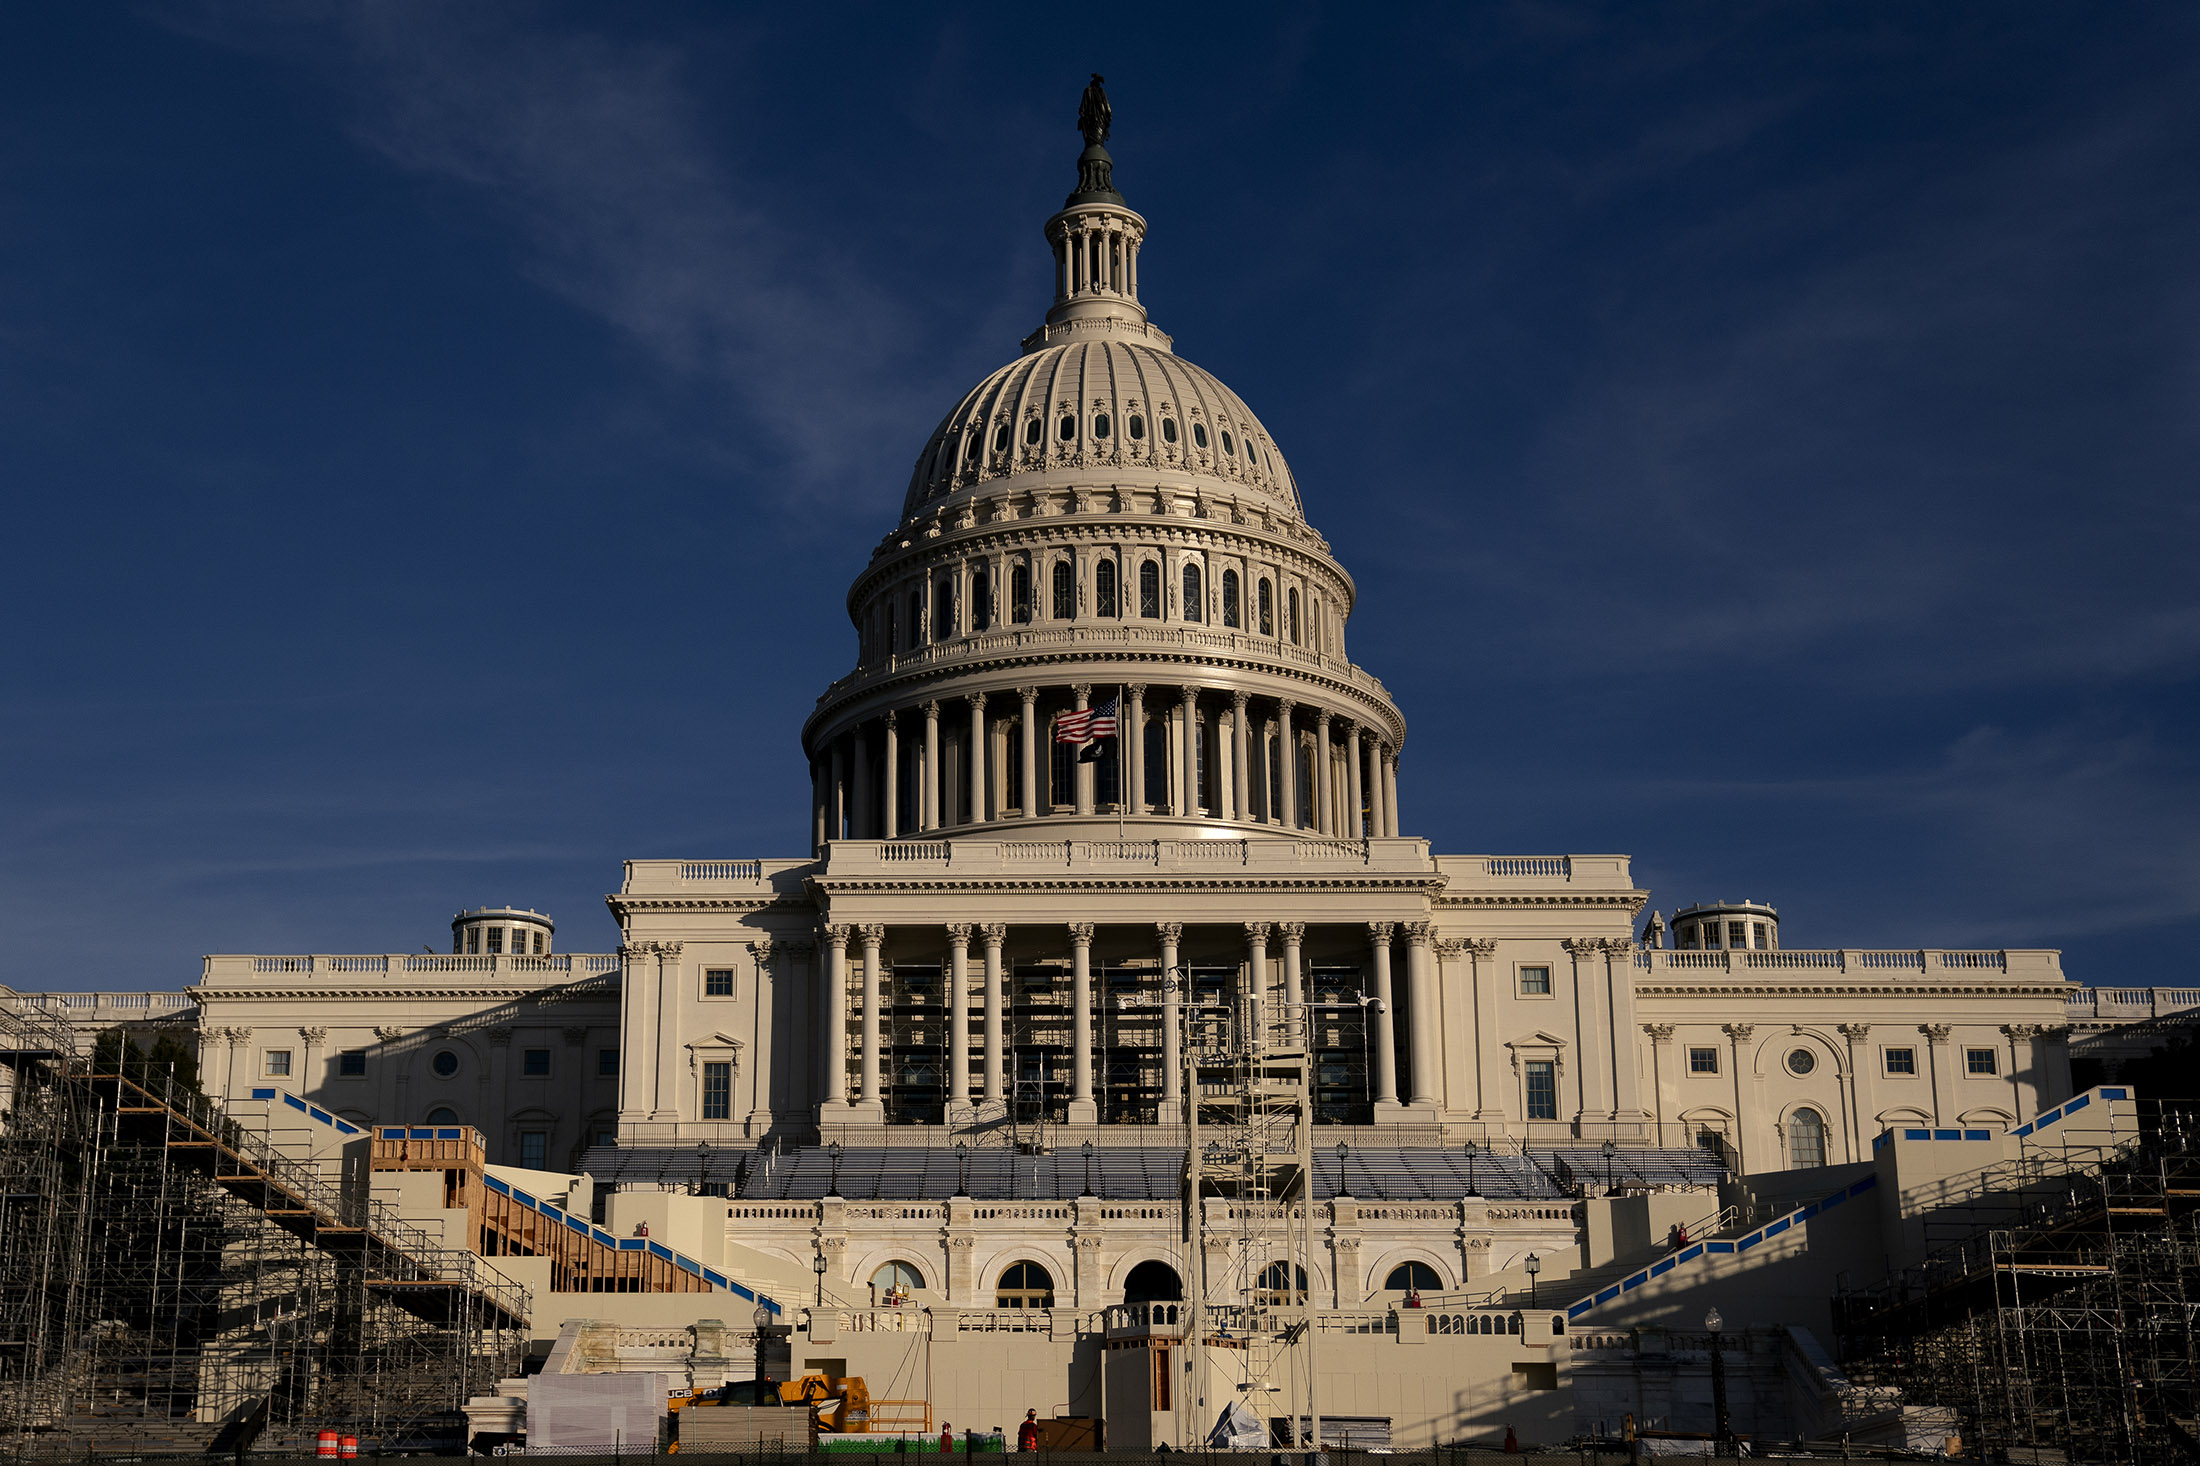 The stage for the Presidential inauguration is prepared outside the U.S. Capitol on December 11, in Washington DC.